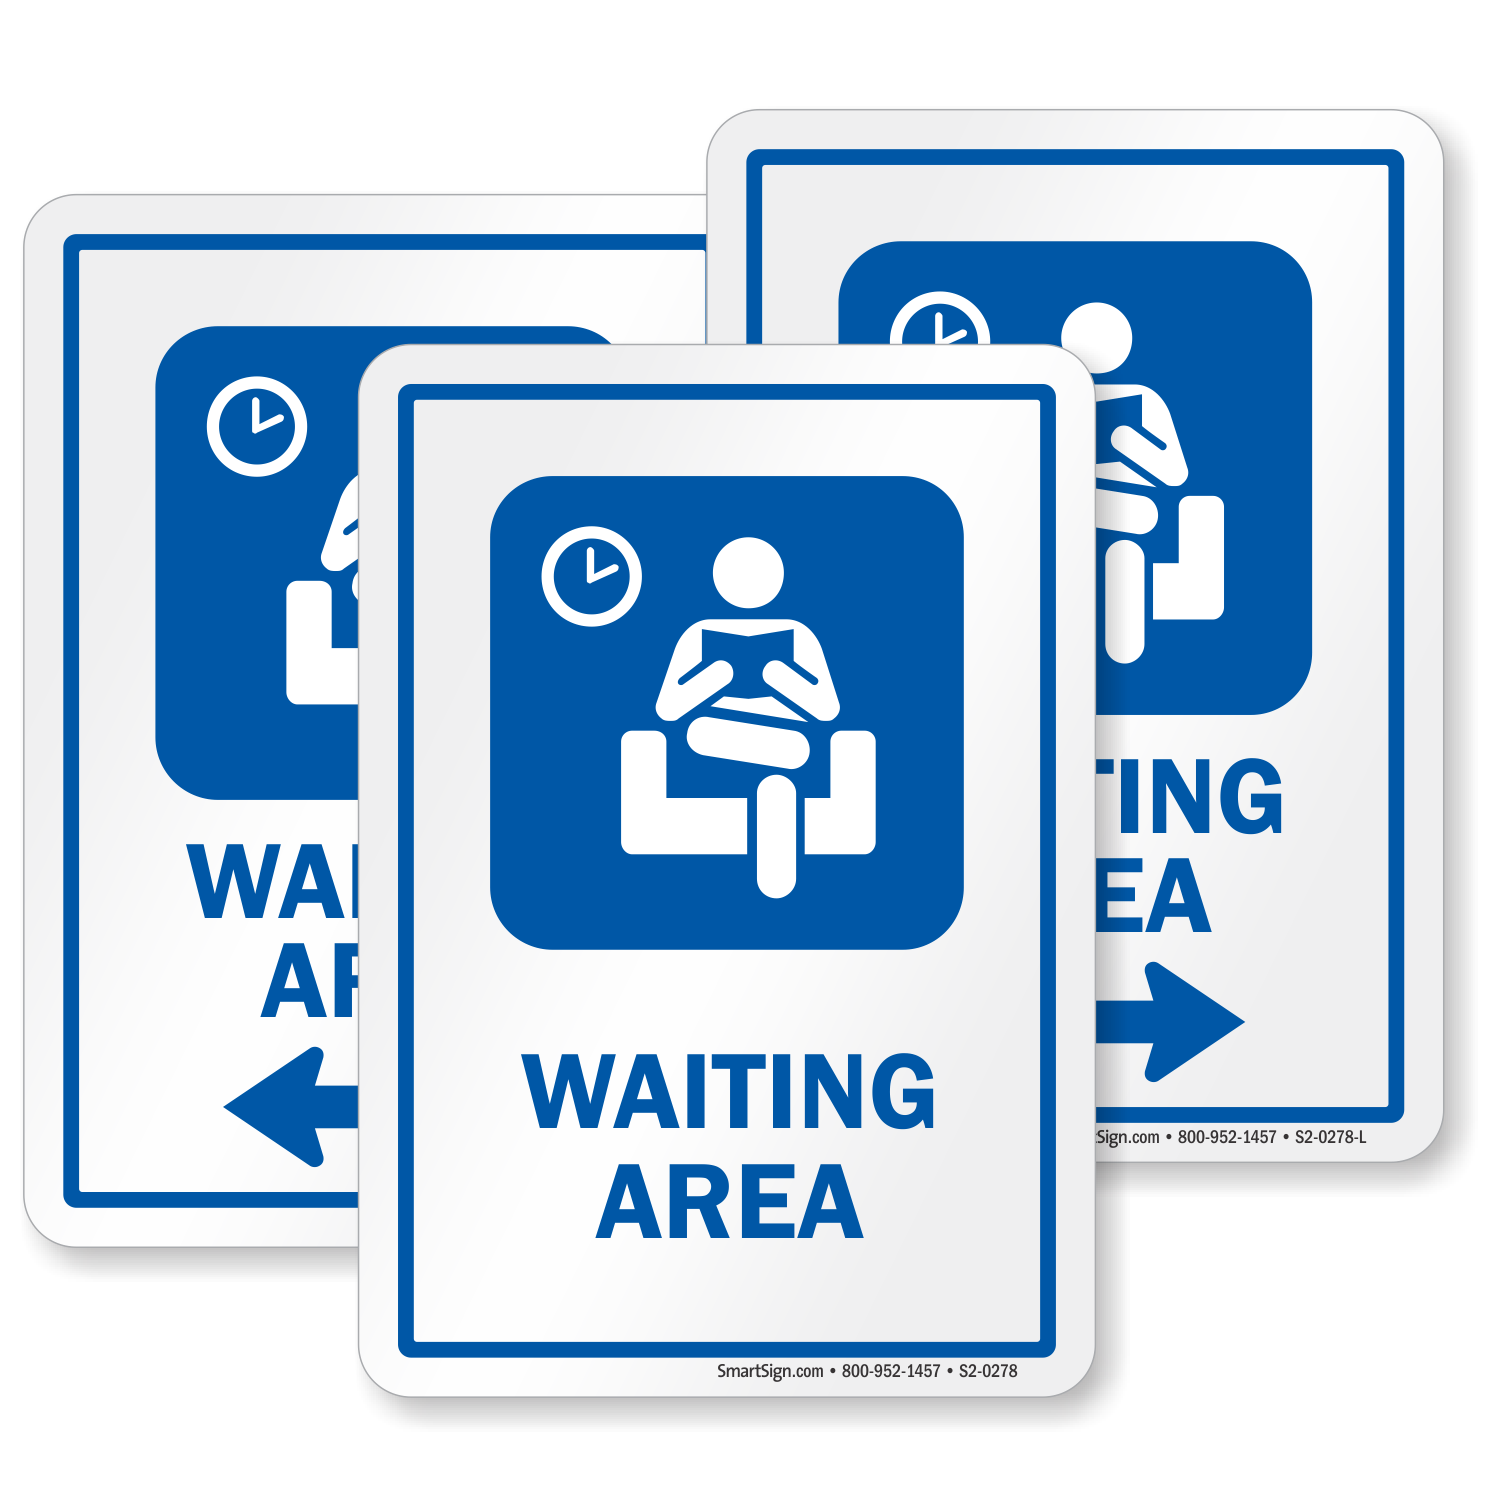 Waiting Area Hospital Sign, Hospital Public Room Symbol. Song Melanie Martinez Signs. Muster Point Signs. Teeth Signs Of Stroke. Sided Hemiplegia Signs. Scan Signs Of Stroke. Text Form Signs Of Stroke. Lane Signs. Chance Signs Of Stroke